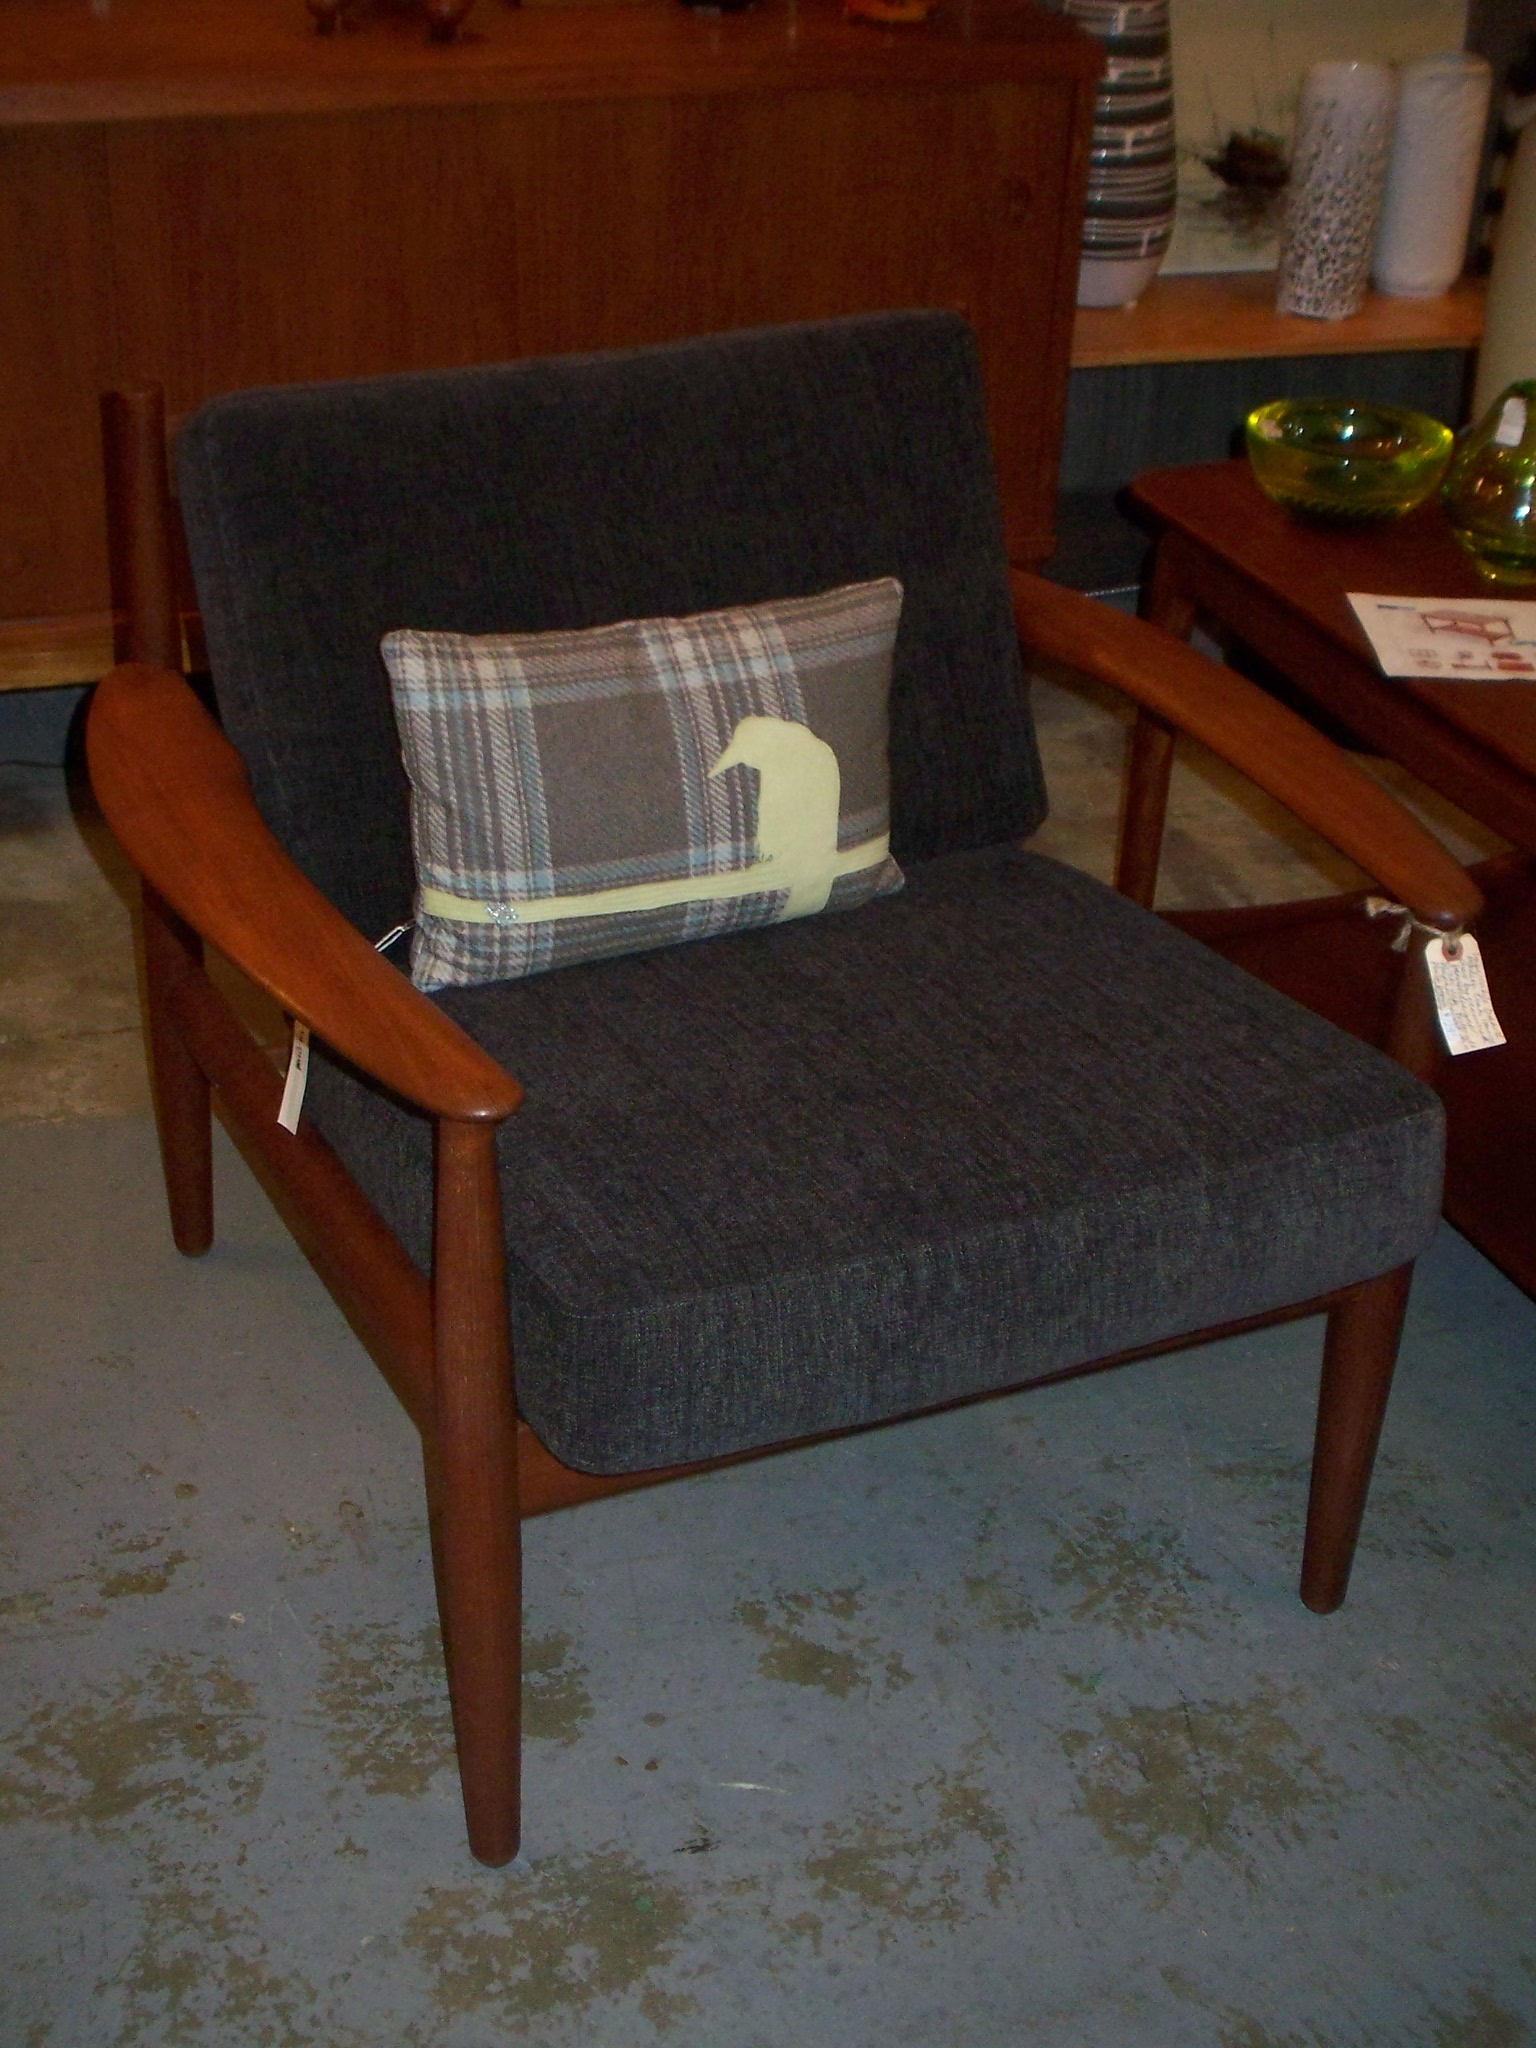 I love chairs like these and the blue fabric looks fantastic with the orange tone of the teak. The gorgeous pillow with the applique is made by Oblong design.